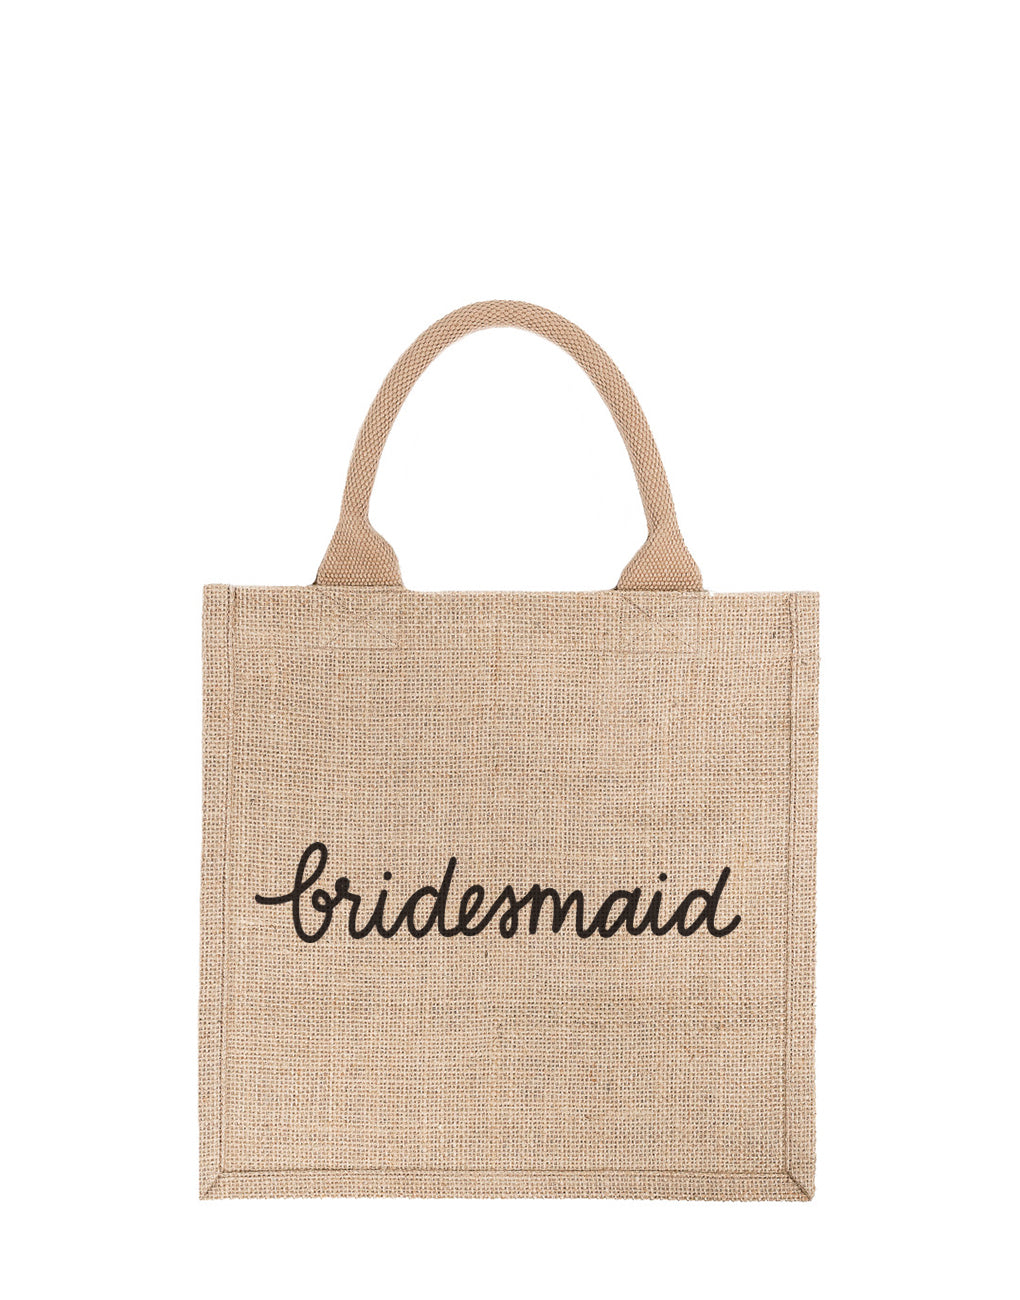 Bridesmaid Reusable Gift Tote In Black Font | The Little Market